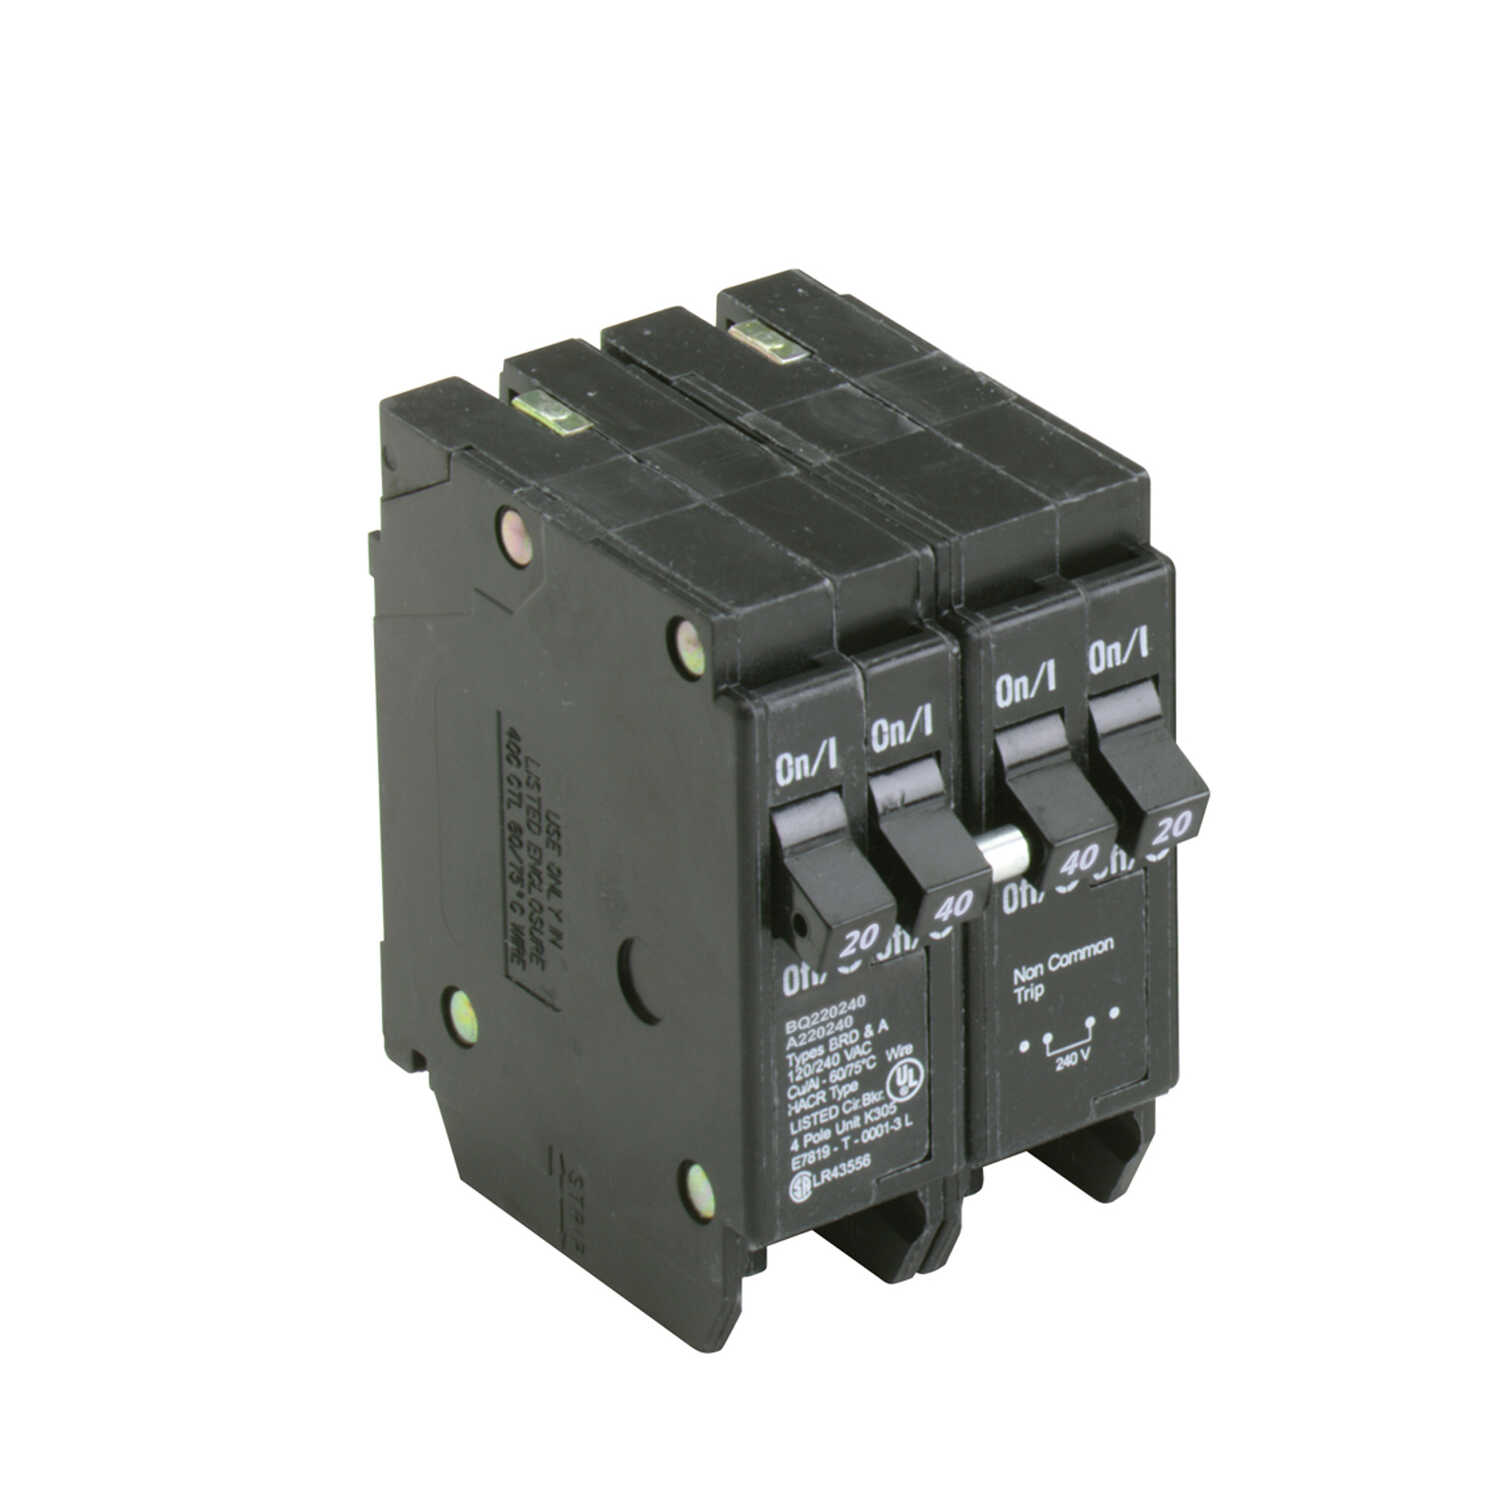 Eaton  Cutler-Hammer  20/40 amps Plug In  4-Pole  Circuit Breaker